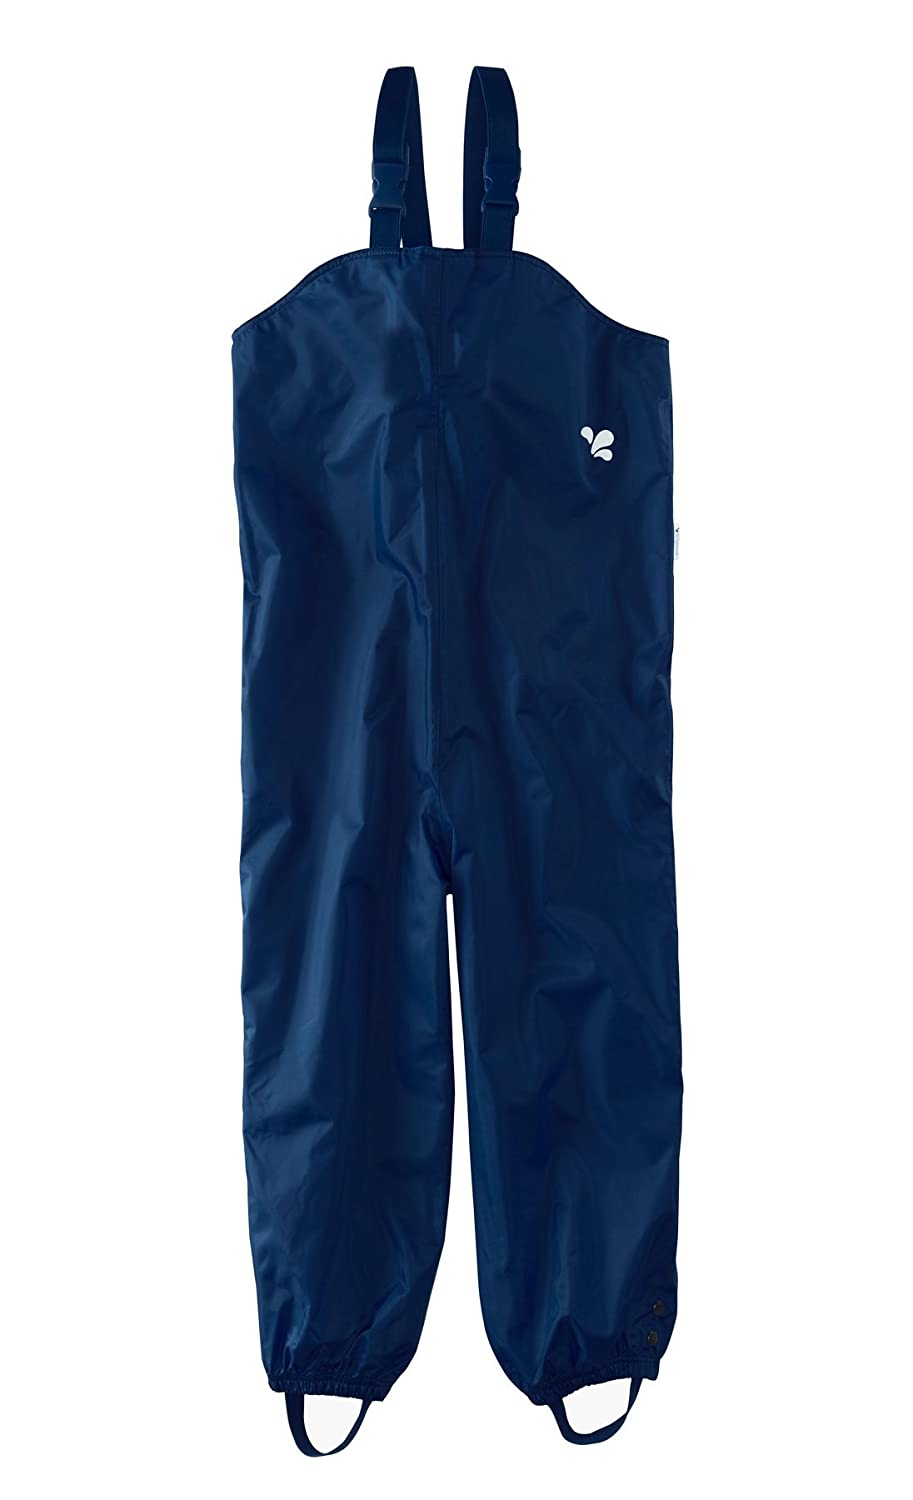 Muddy Puddles Little Boys' Waterproof Bib Overalls Bib and Brace Navy Blue